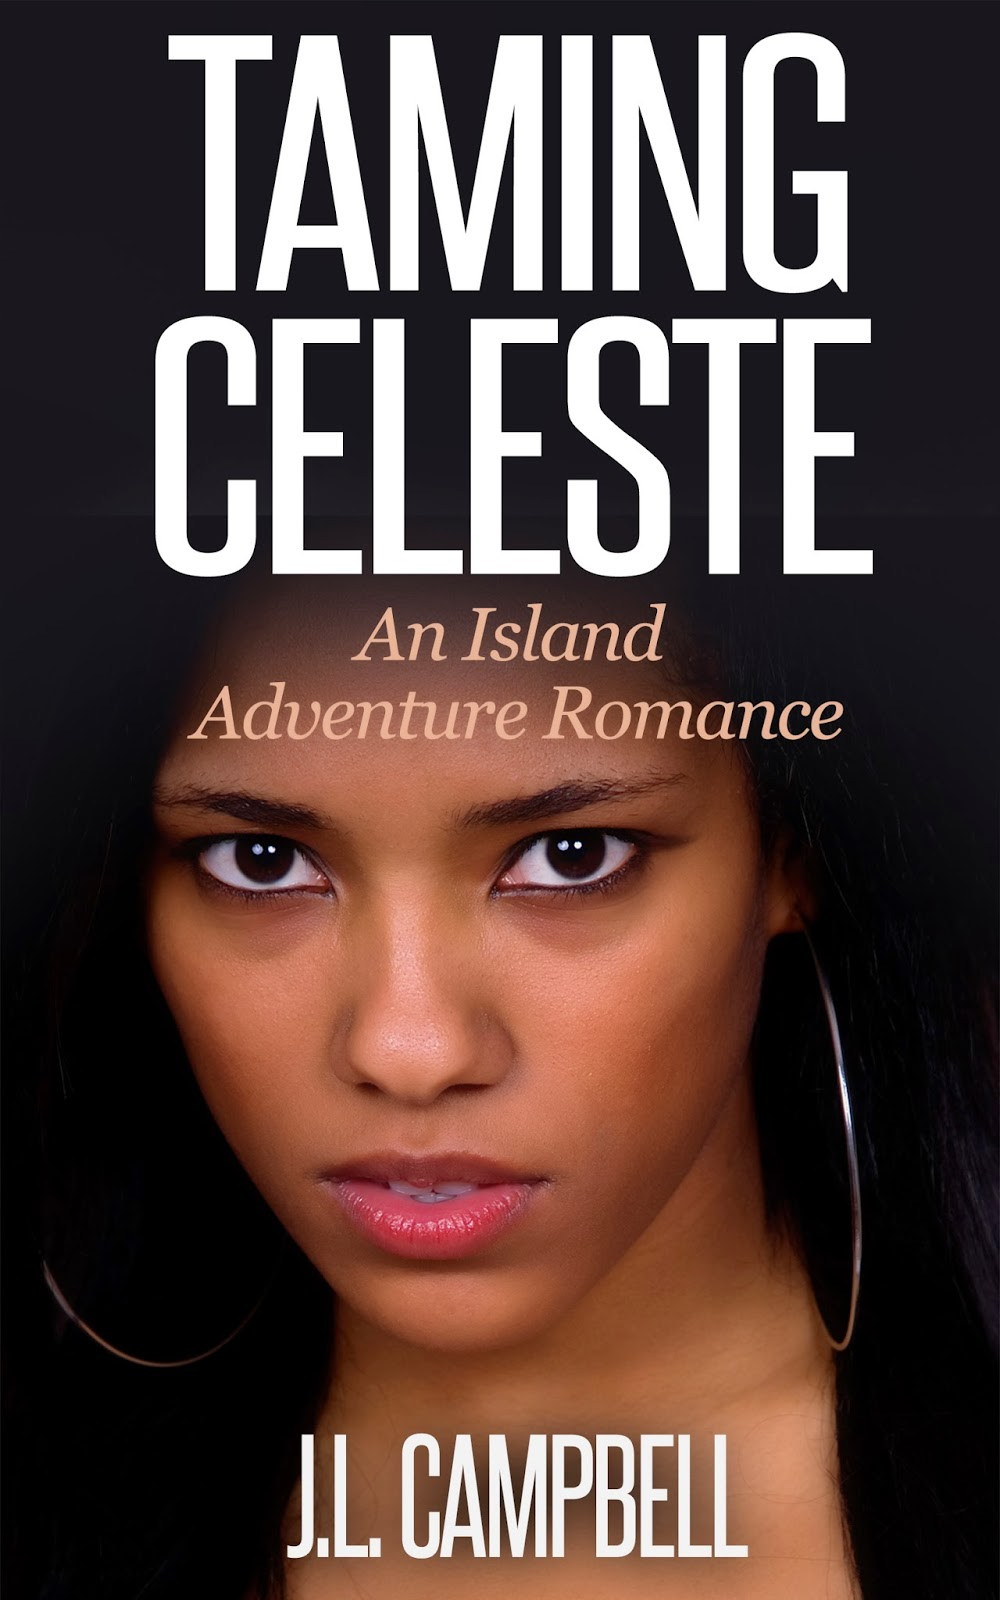 http://www.amazon.com/Taming-Celeste-Island-Adventure-Romance-ebook/dp/B00LCPRY7E/ref=sr_1_1?s=books&ie=UTF8&qid=1414373236&sr=1-1&keywords=Taming+Celeste